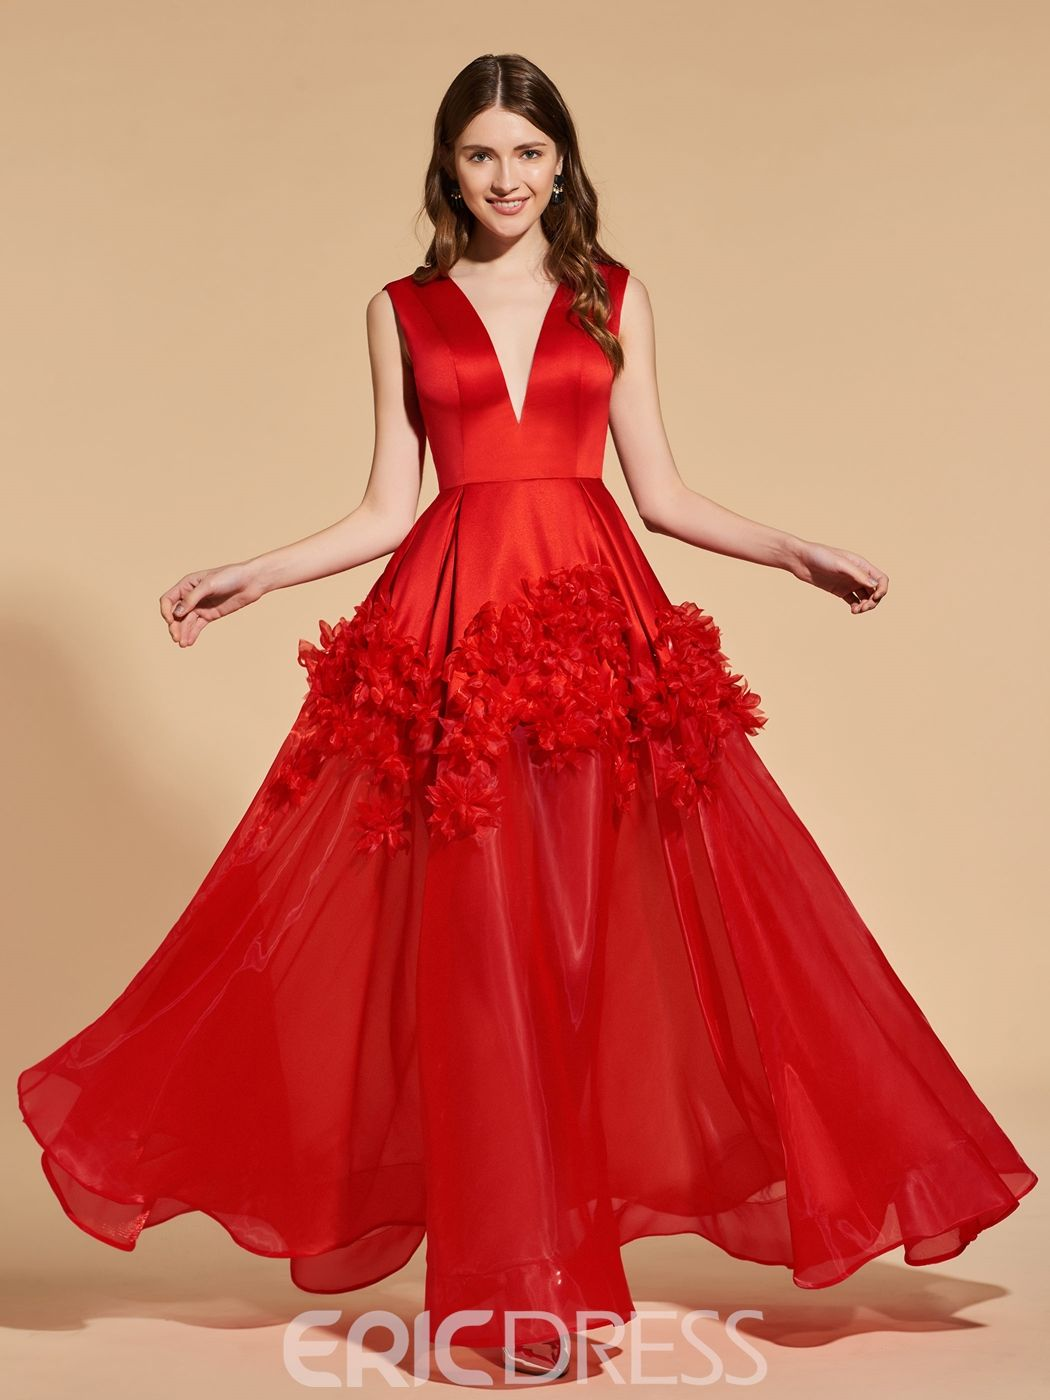 a095854bc5 Ericdress A Line V Neck Flower Applique Red Prom Dress